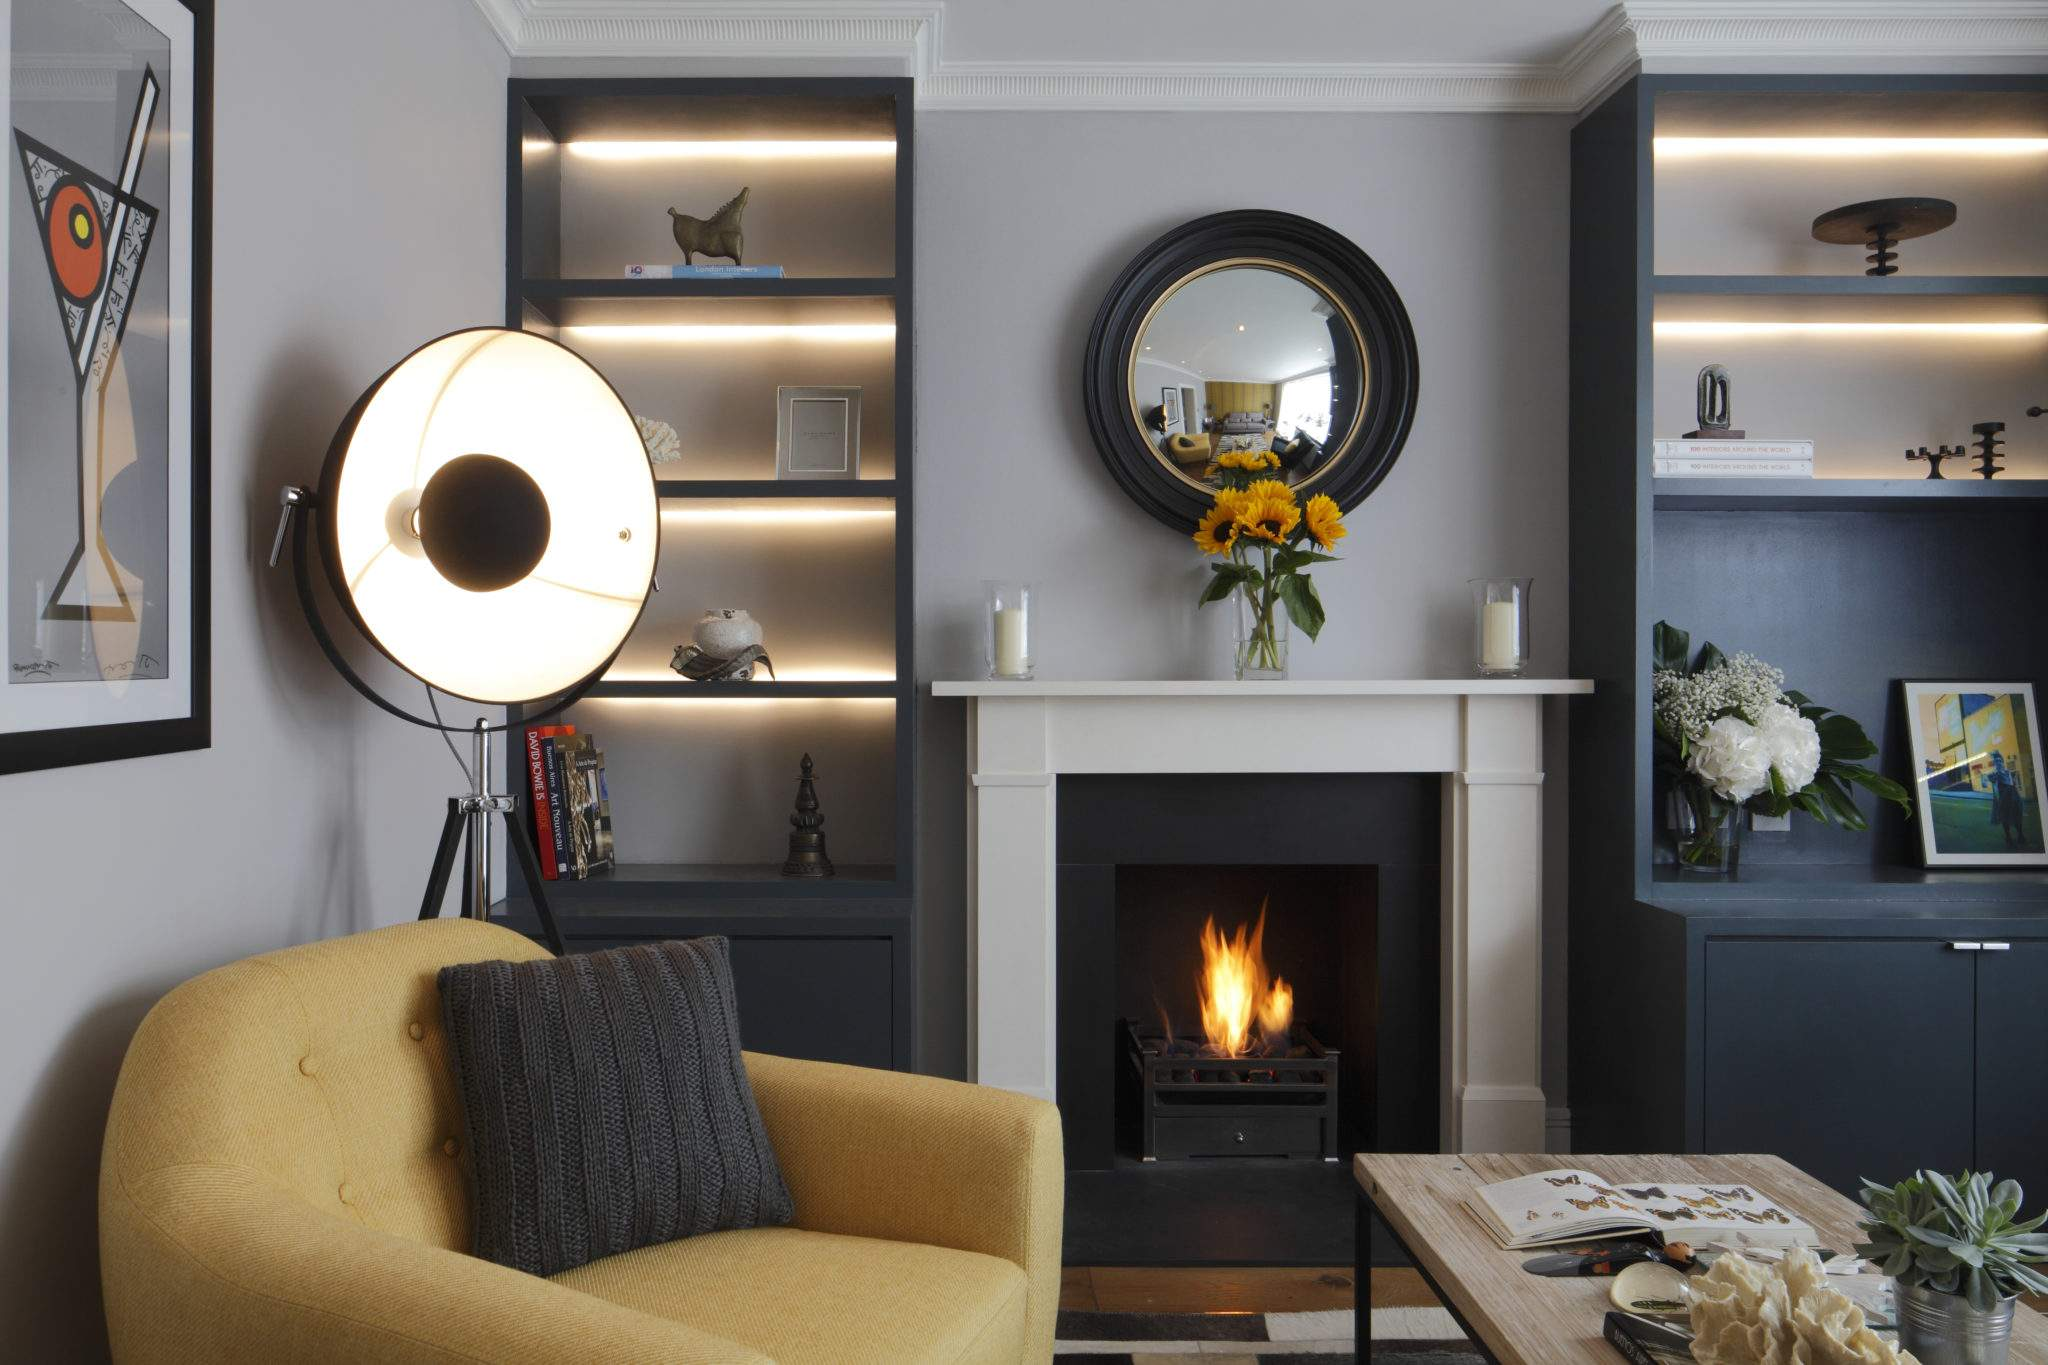 PH London PH London Interiors | Inspired Interior Design   SW London U0026  Surrey